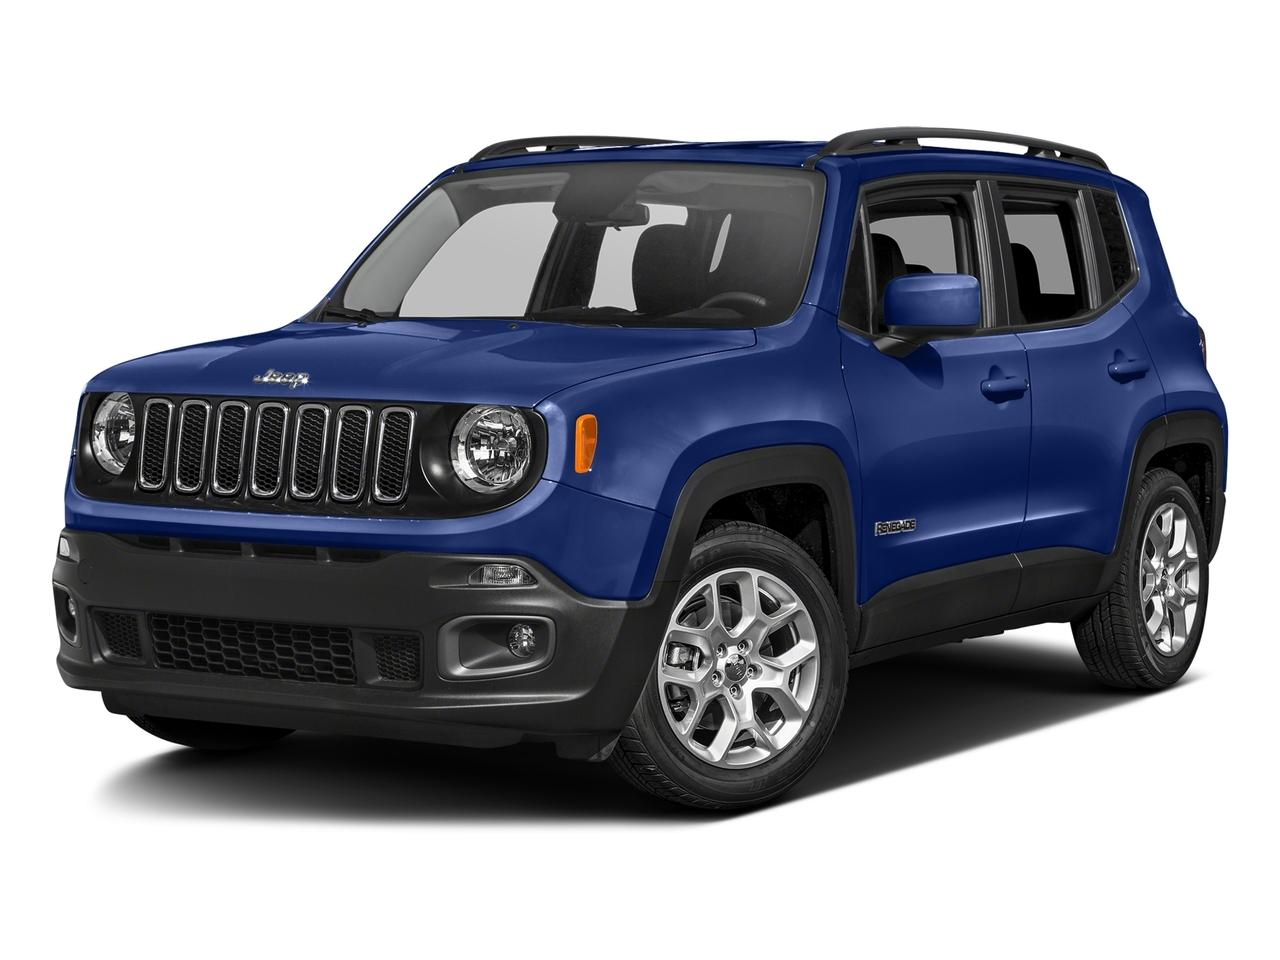 2017 Jeep Renegade Vehicle Photo in Fishers, IN 46038